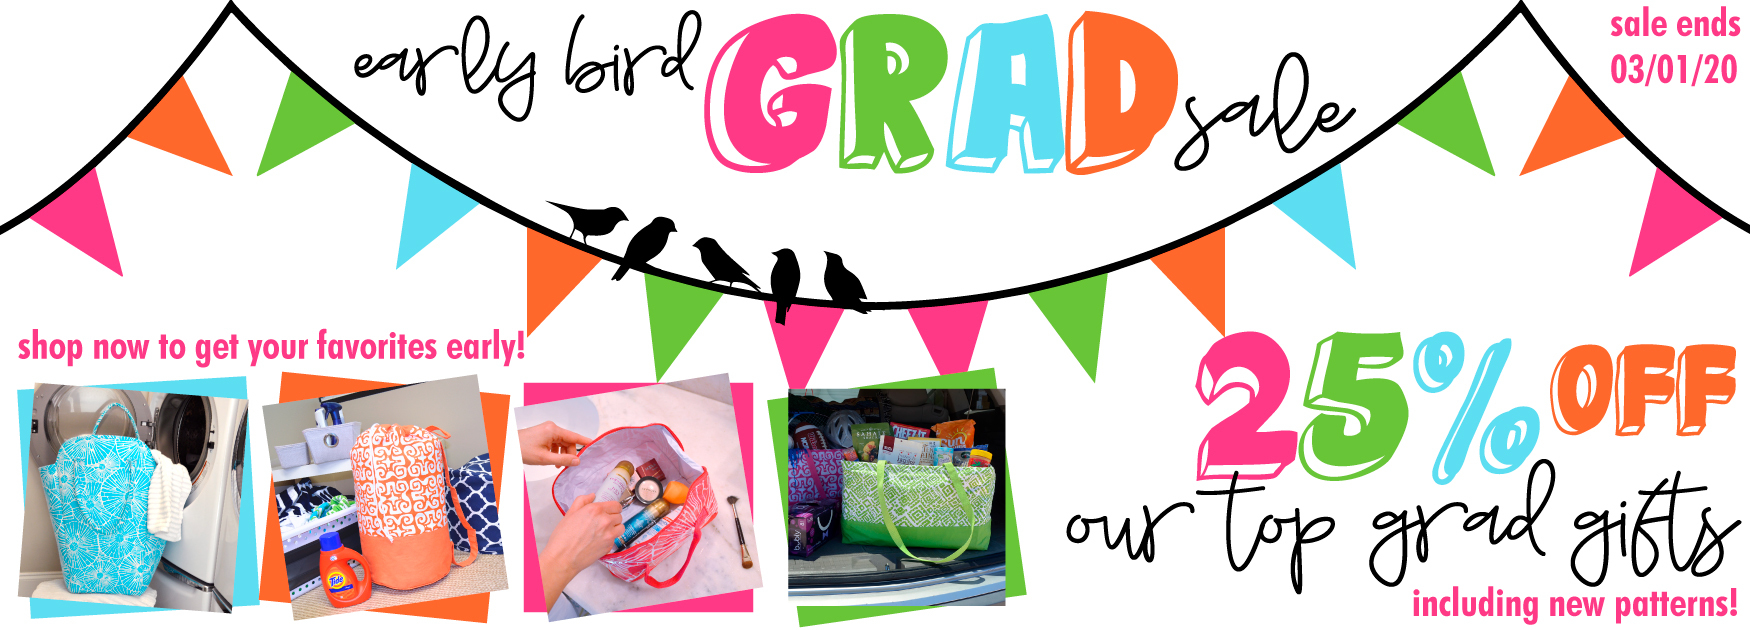 early bird graduation sale! 25% off our top gifts.